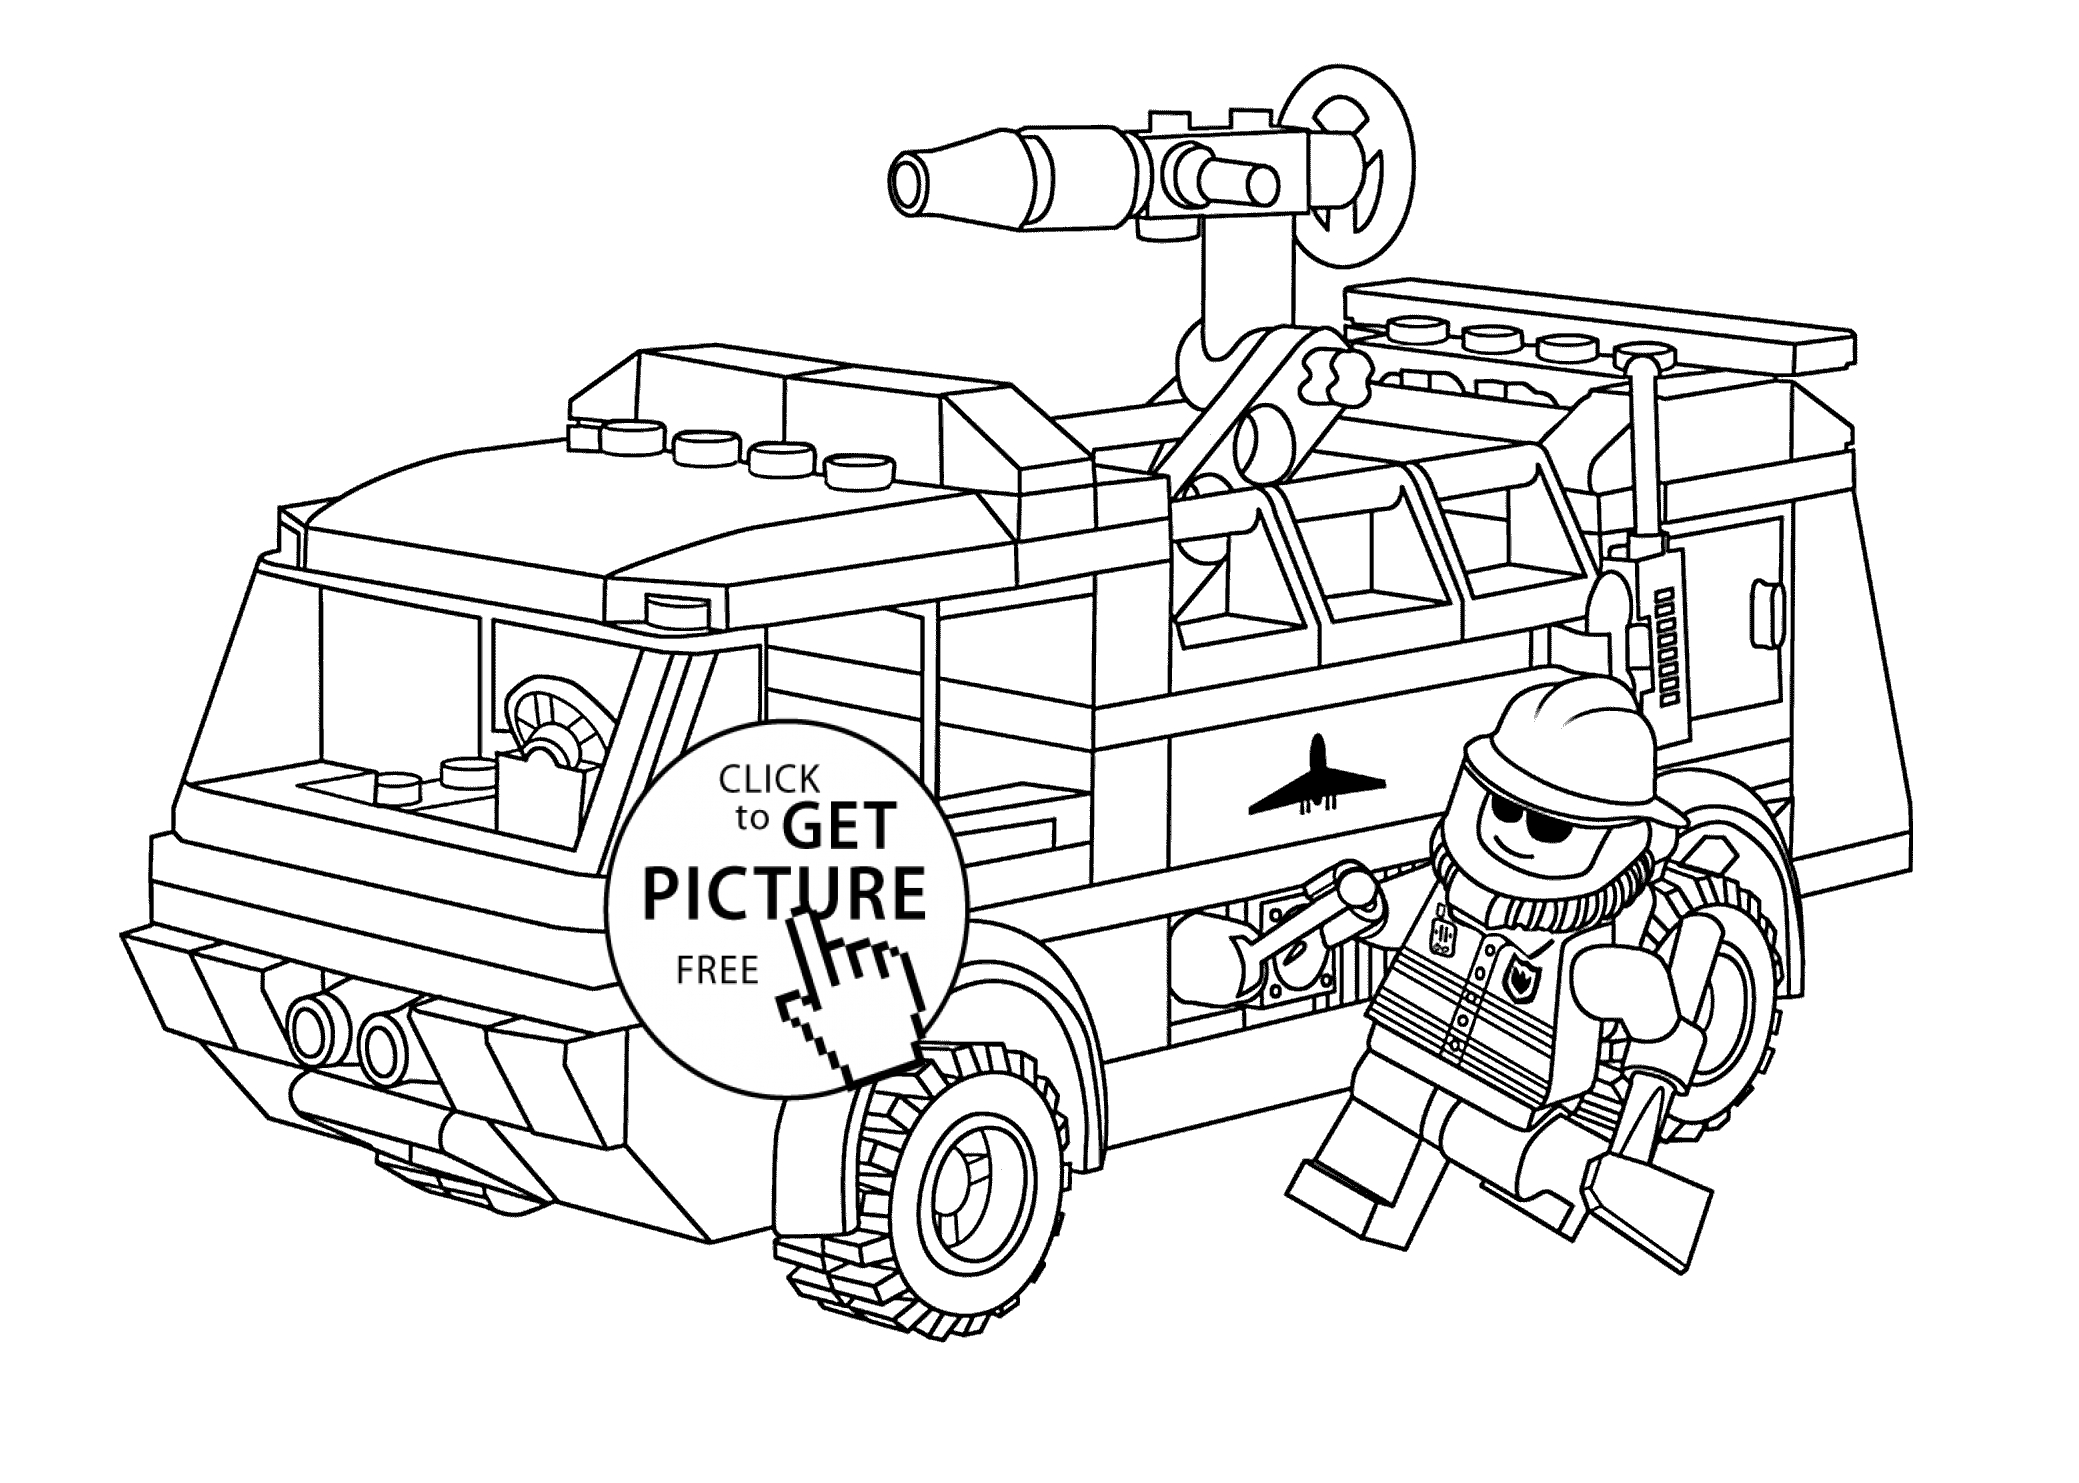 truck coloring pages - fireman coloring pages lego firetruck with fireman coloring page for kids printable free free coloring book